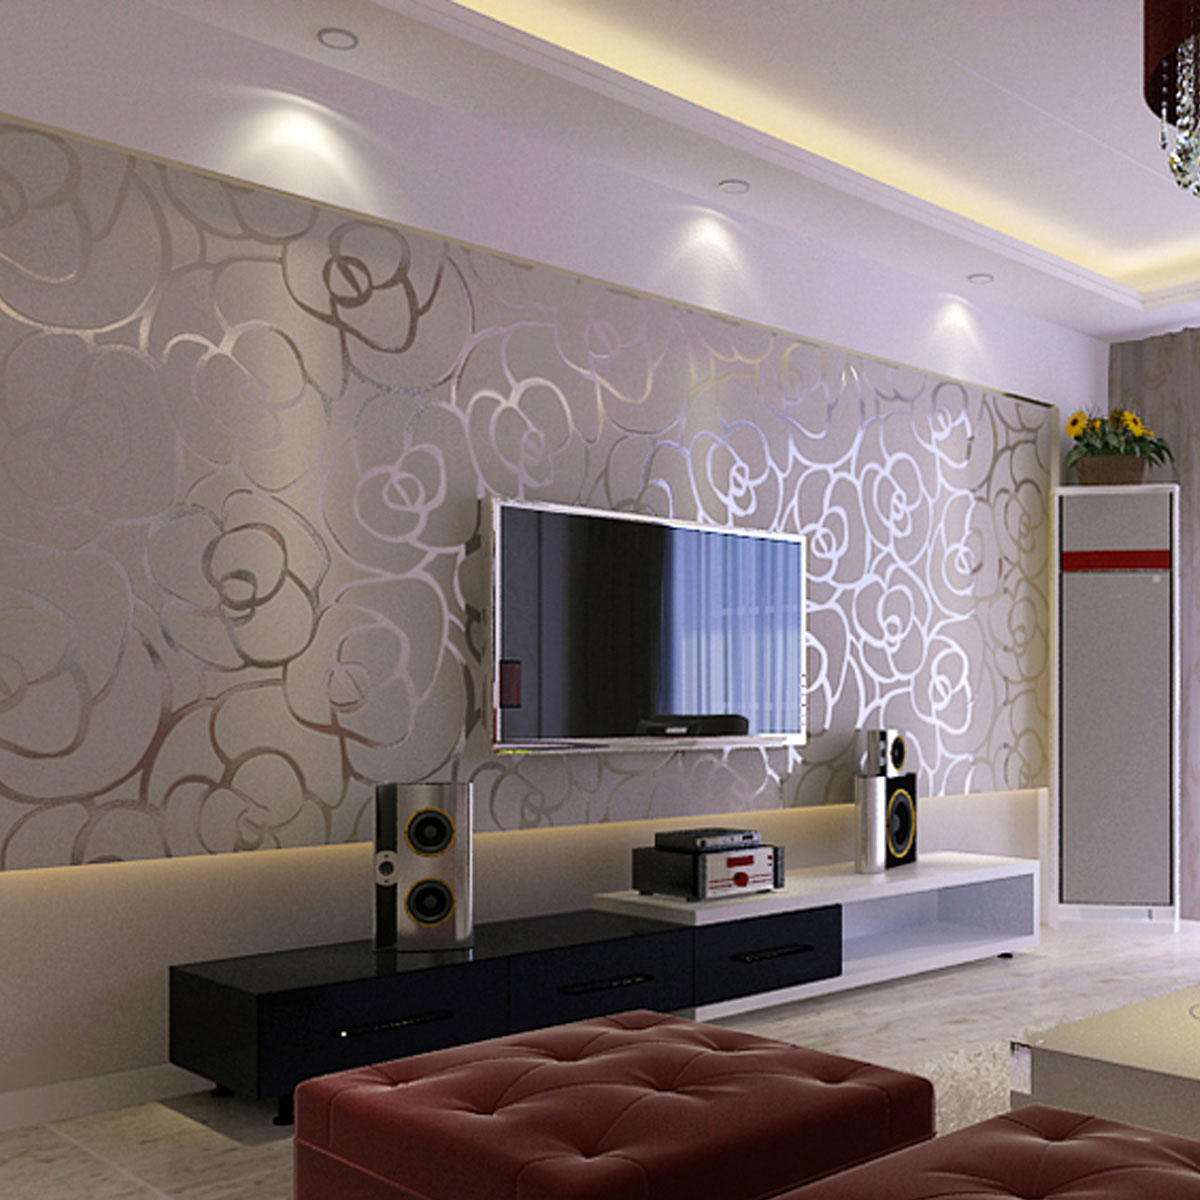 wallpaper decoration develop into one of exquisite modern decoration 1200x1200